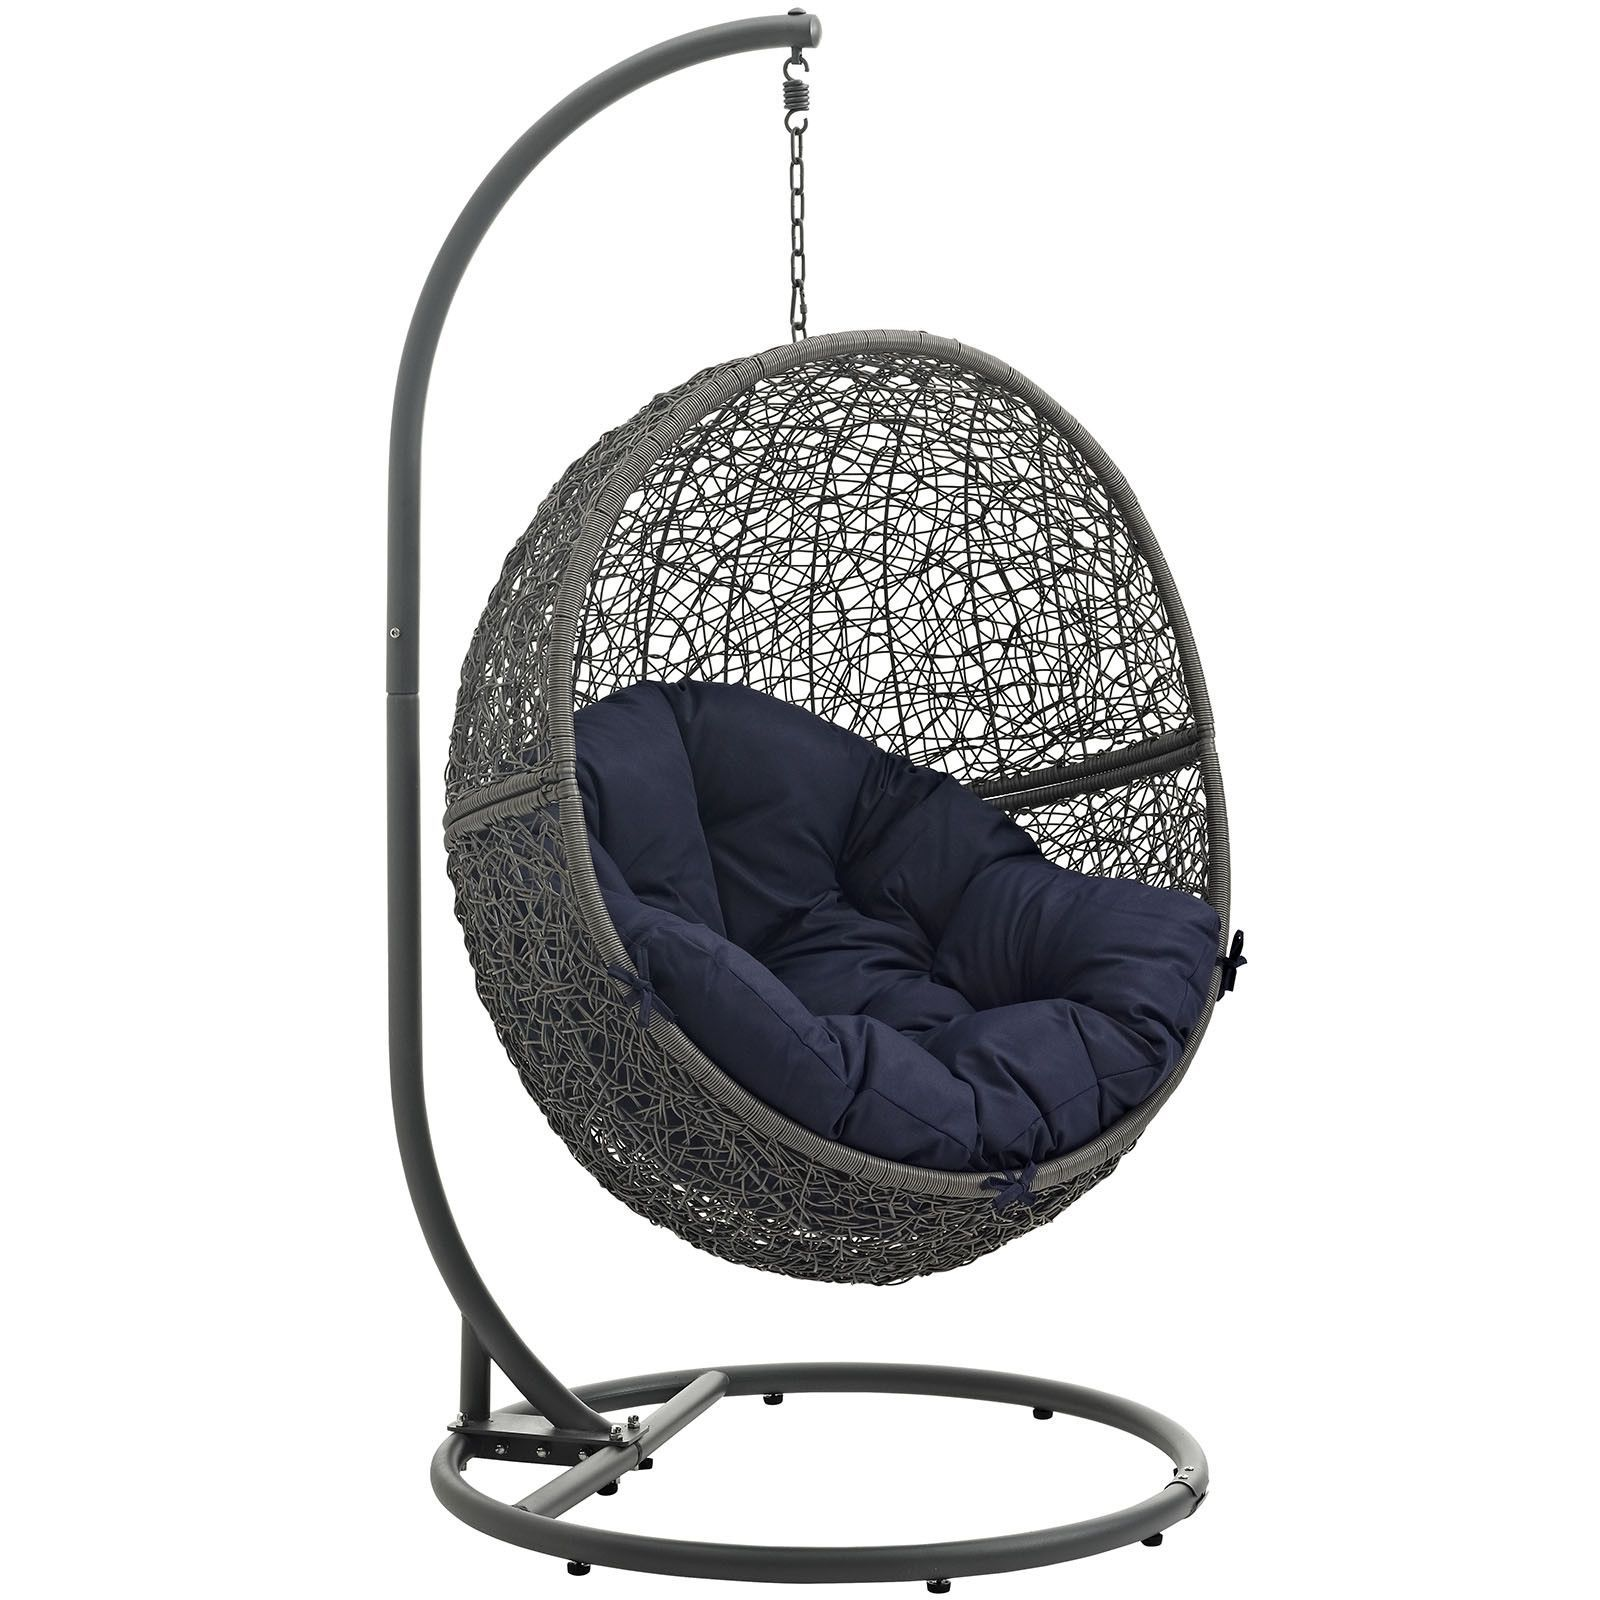 Buy hide outdoor patio swing chair at harvey u haley for only